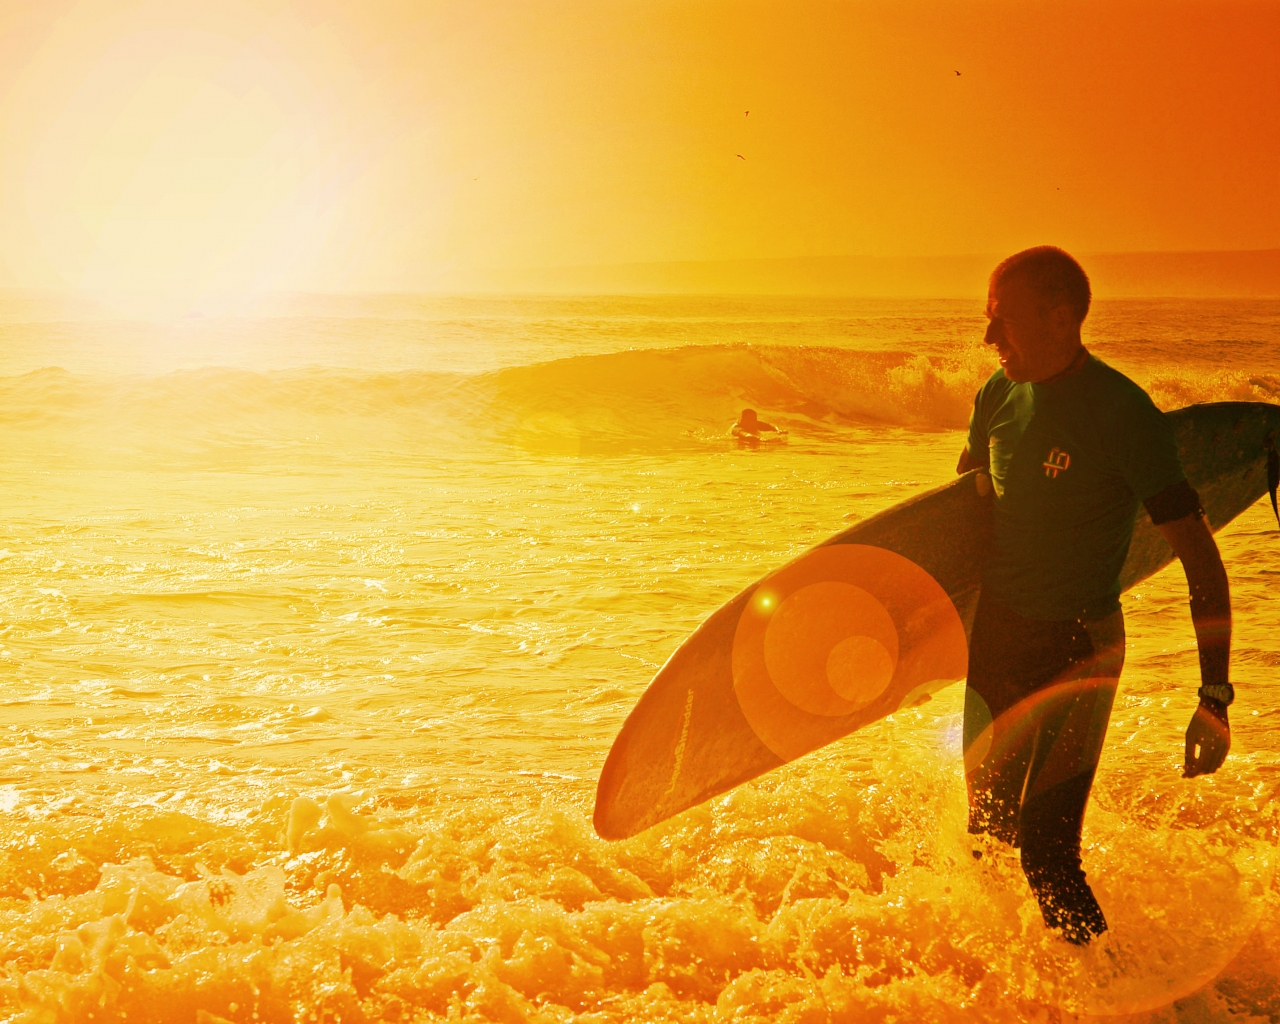 Huanchaco Surf - 1280x1024